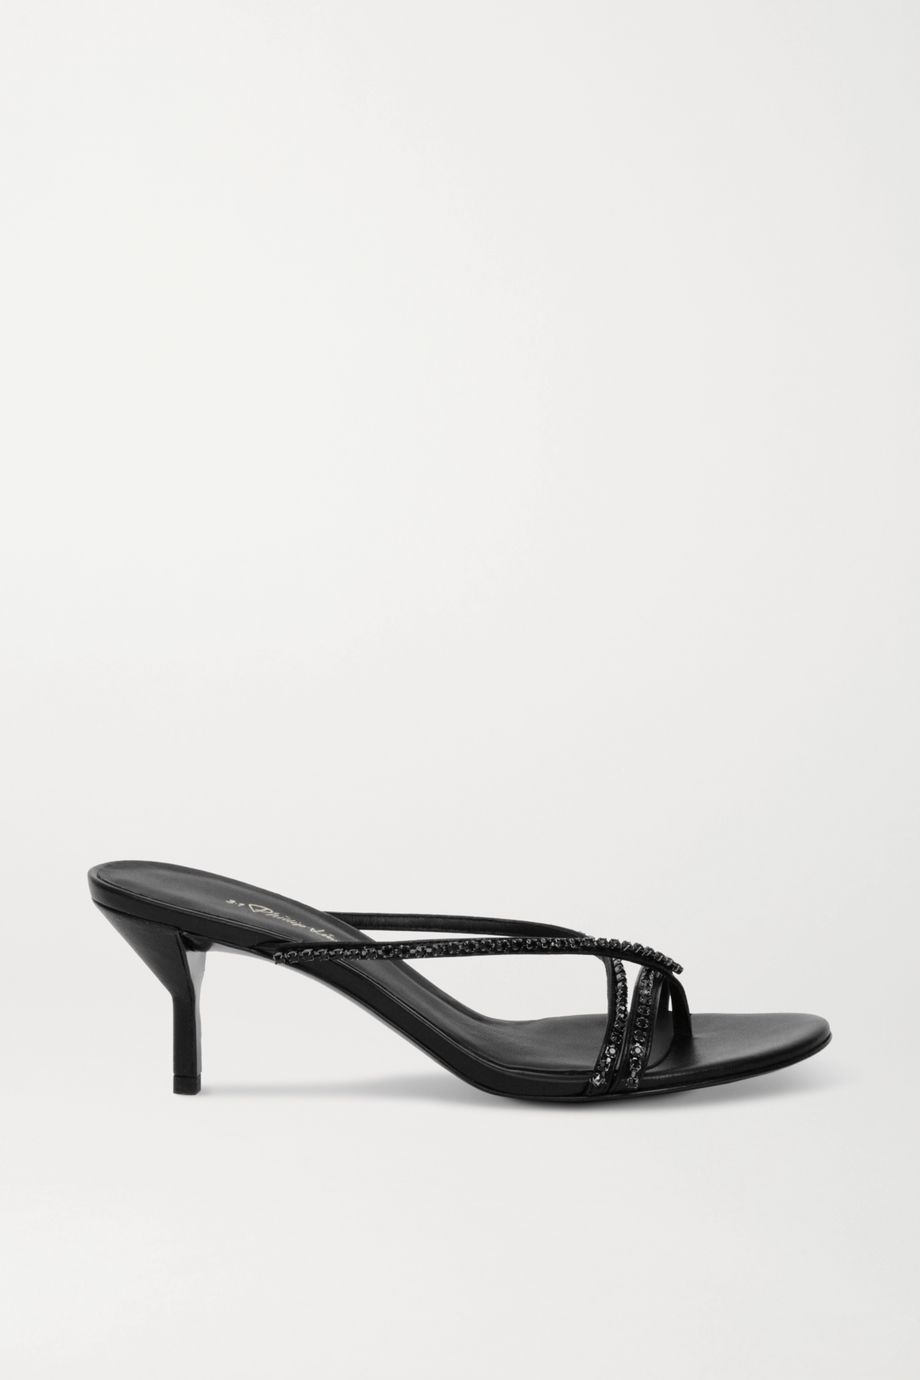 3.1 Phillip Lim Kiddie crystal-embellished leather sandals